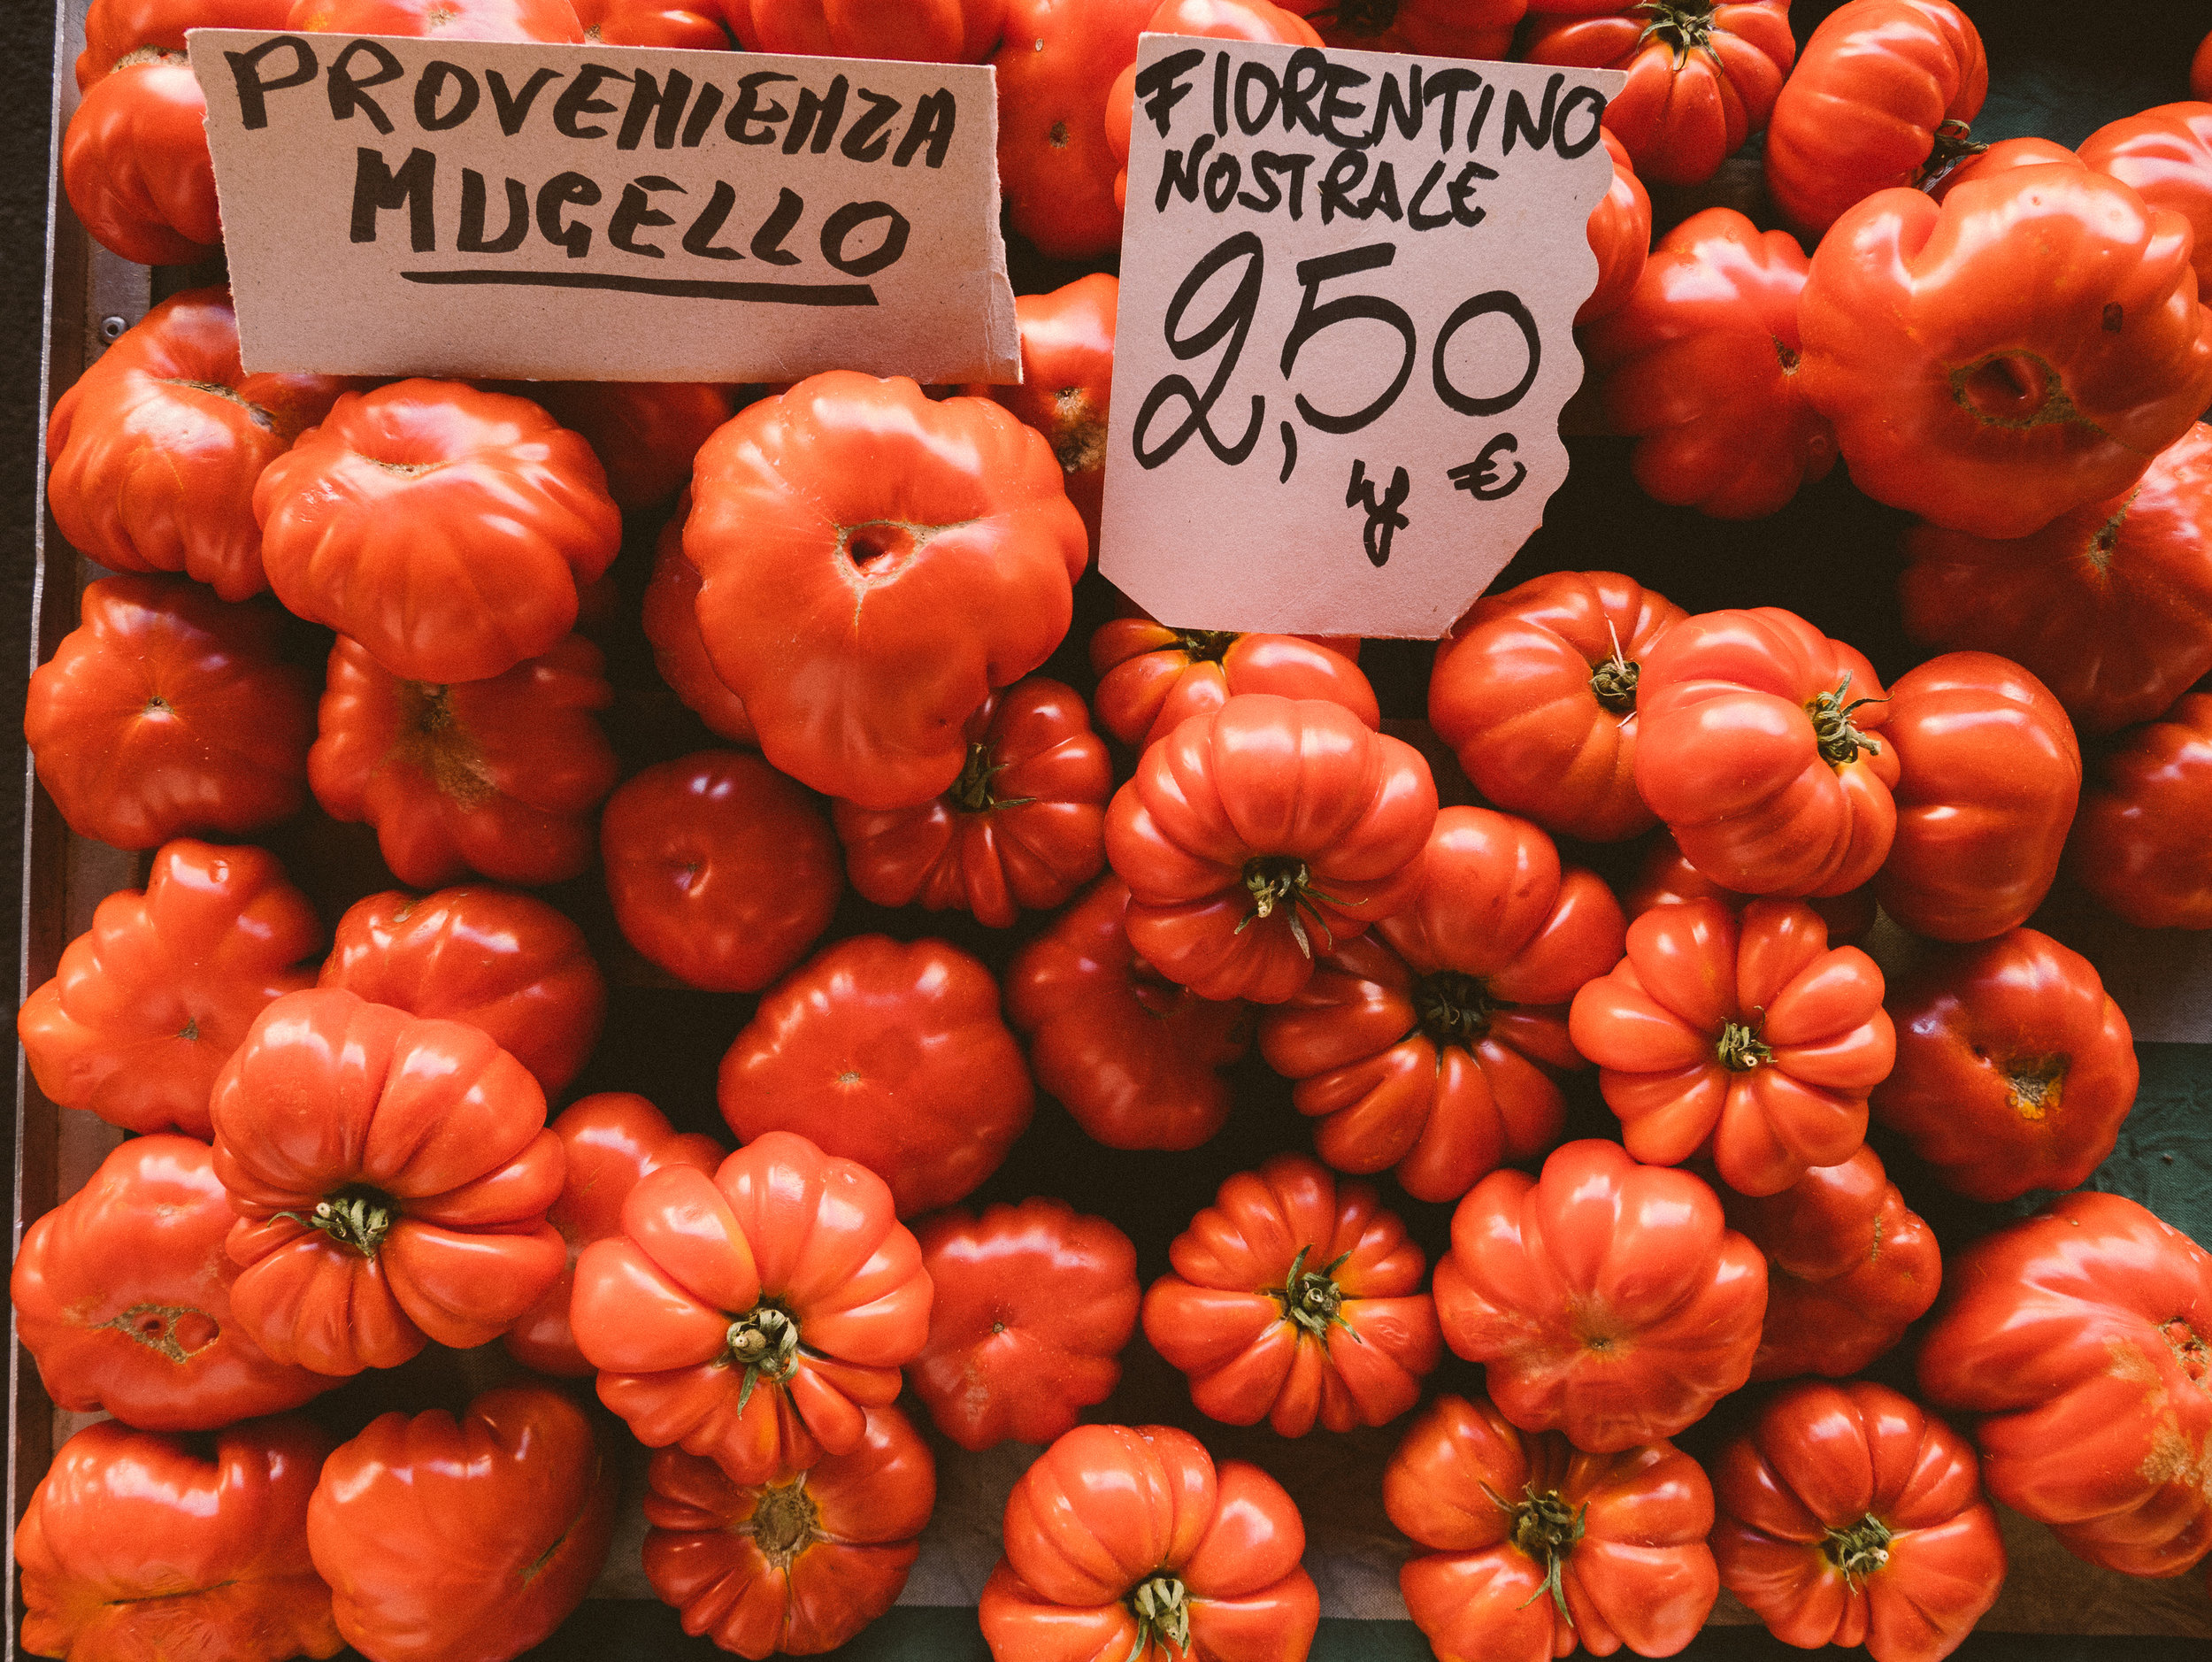 The most delicious tomatoes you will find at Sant Ambrogio market